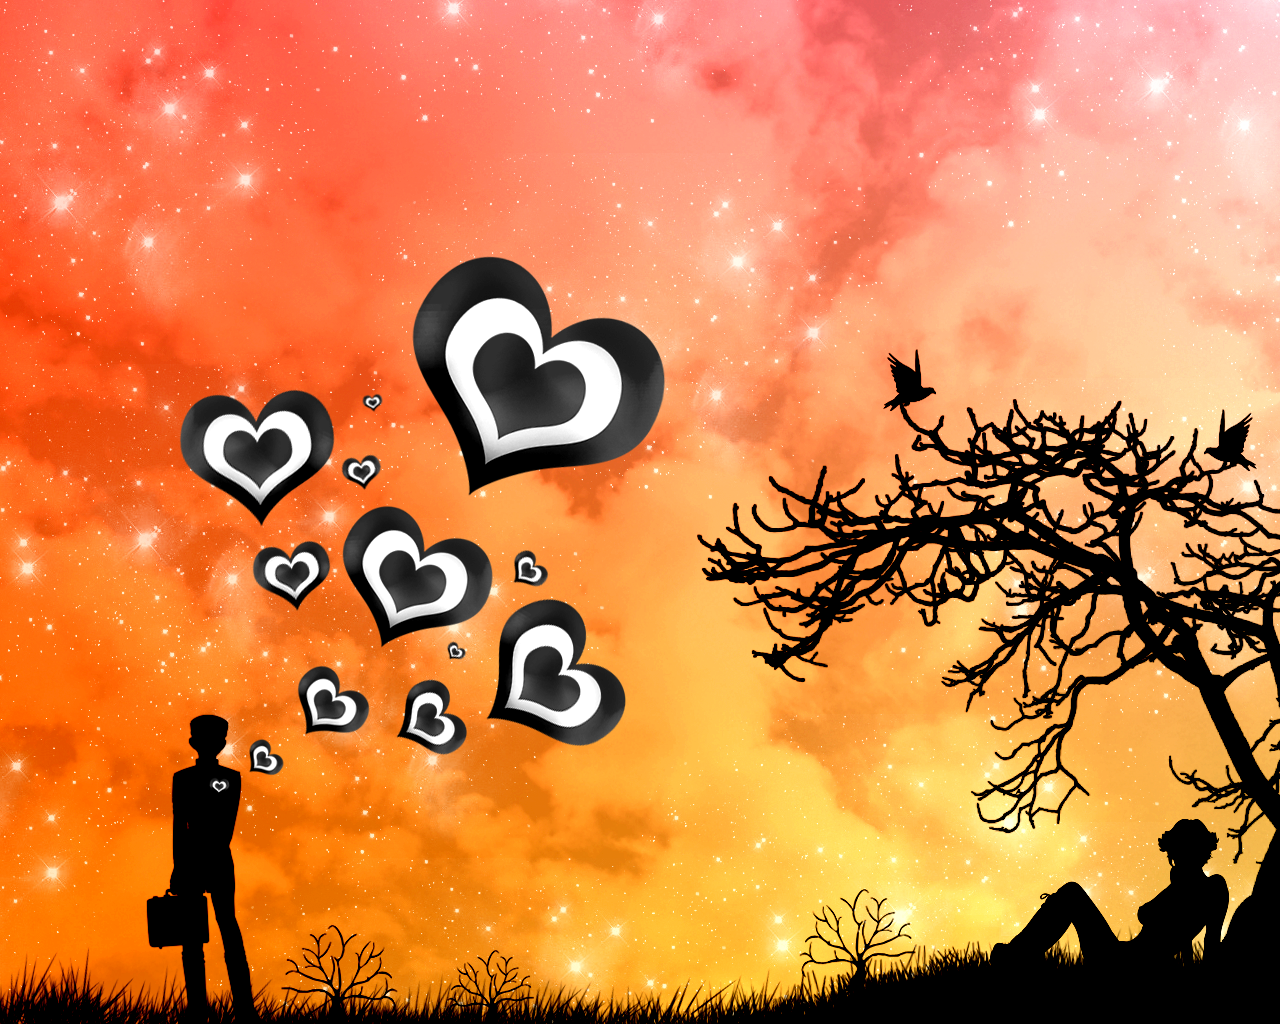 Love Wallpapers HD:wallpapers screensavers